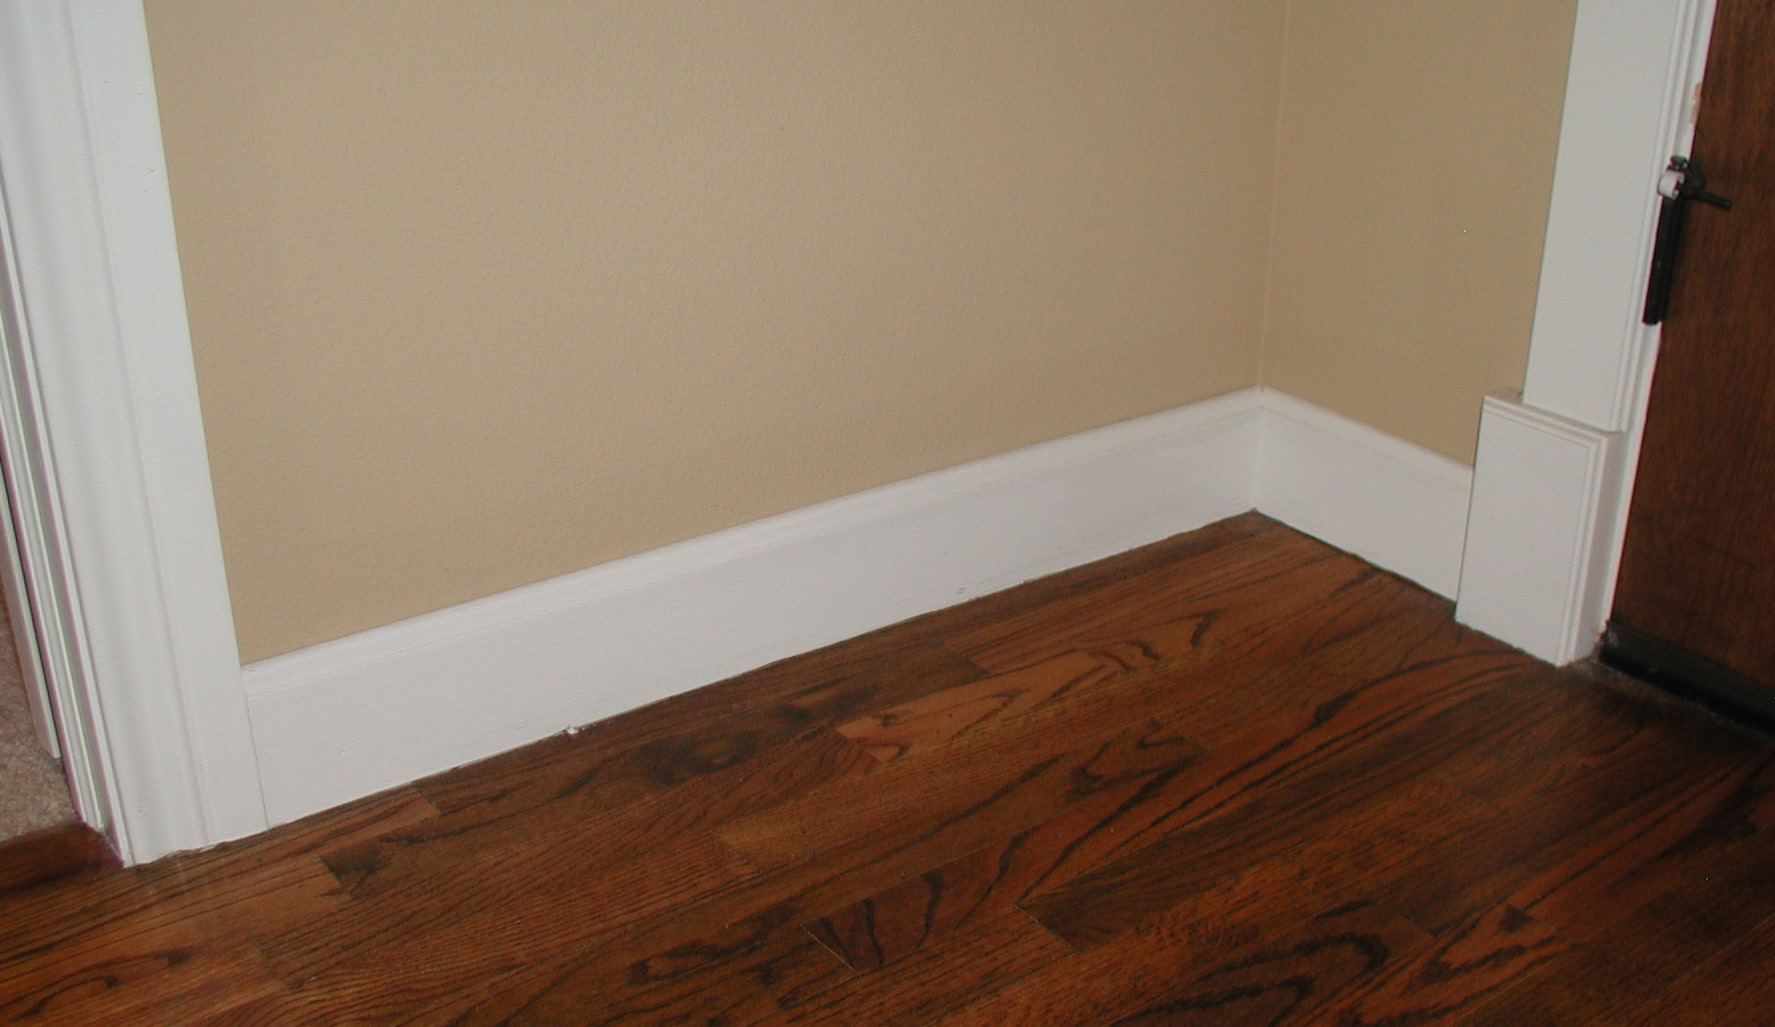 How to cut base molding in place - Baseboard Molding With Cream Wall And Wooden Floor Ideas